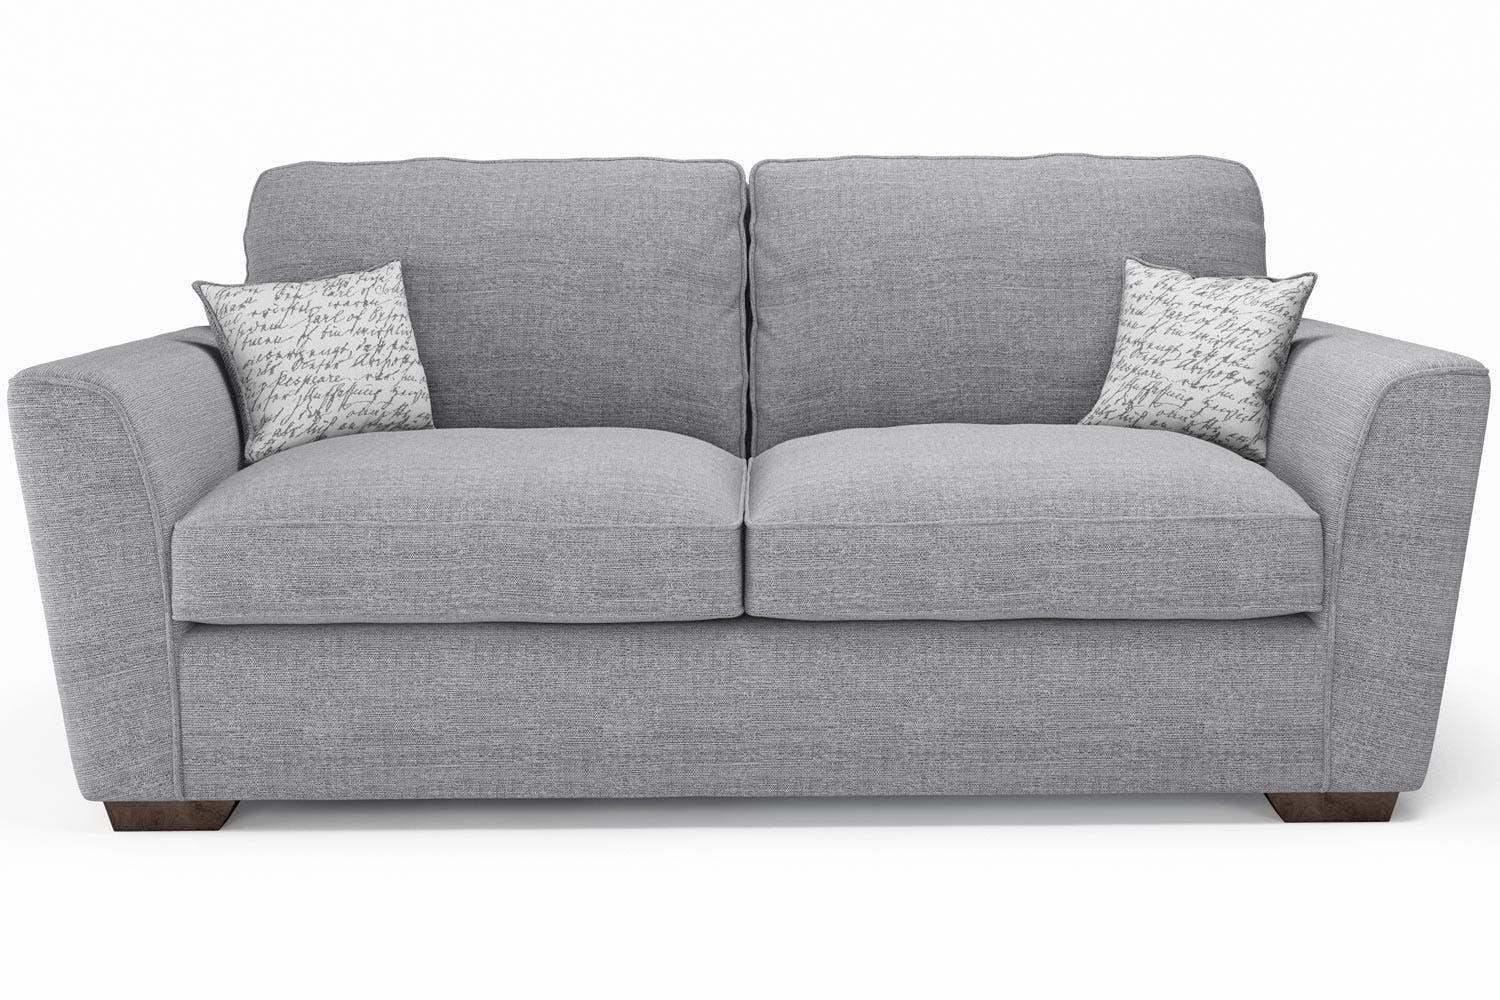 Fantasia 3 seater sofa ireland for Sofa 7 seater